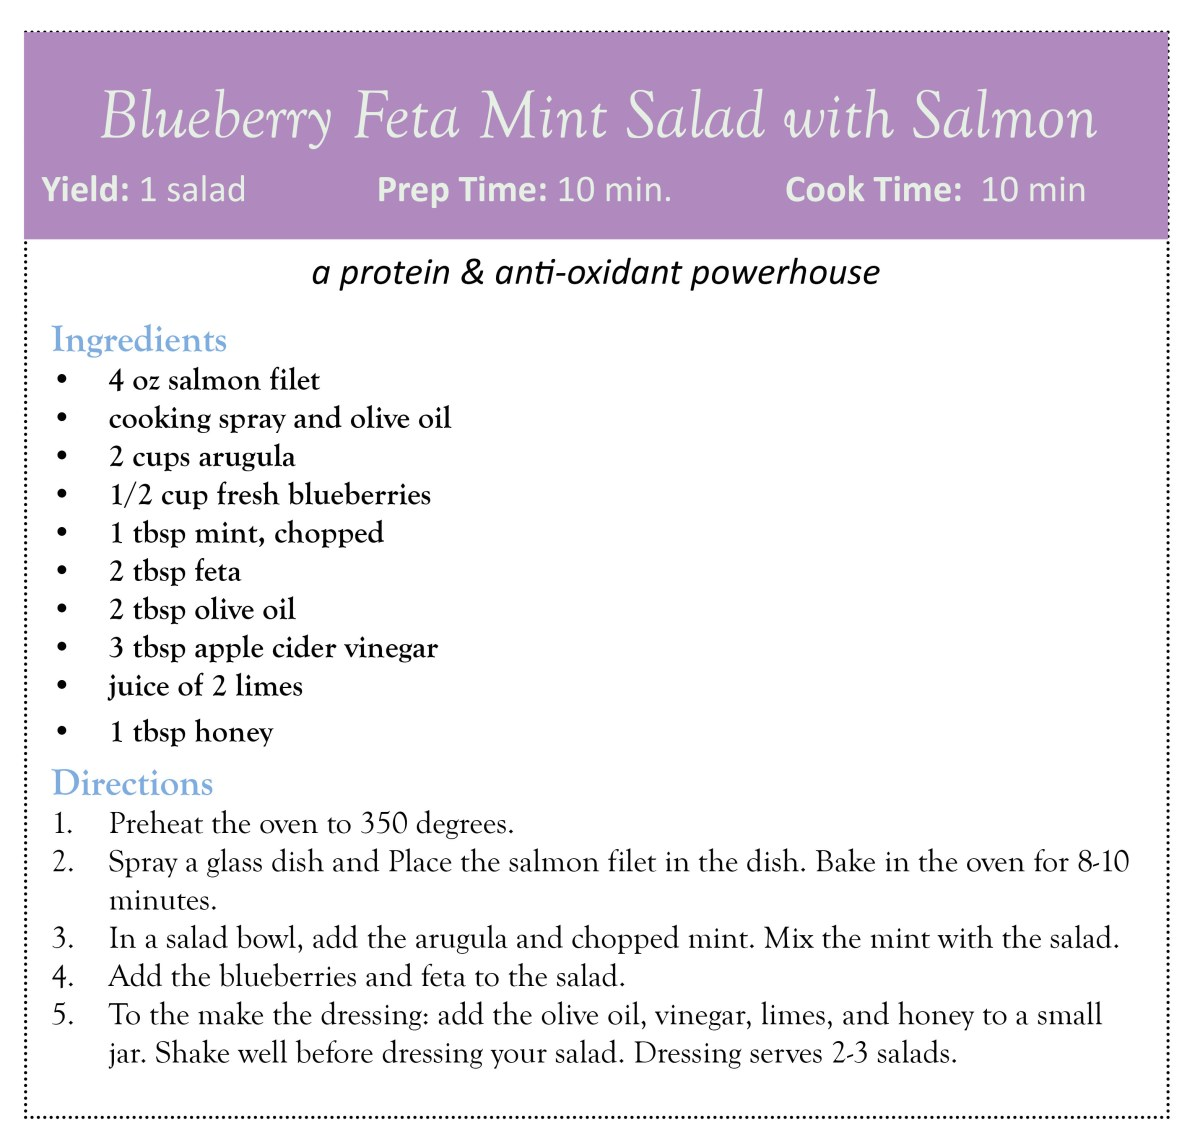 Blueberry Feta Mint Salad with Salmon